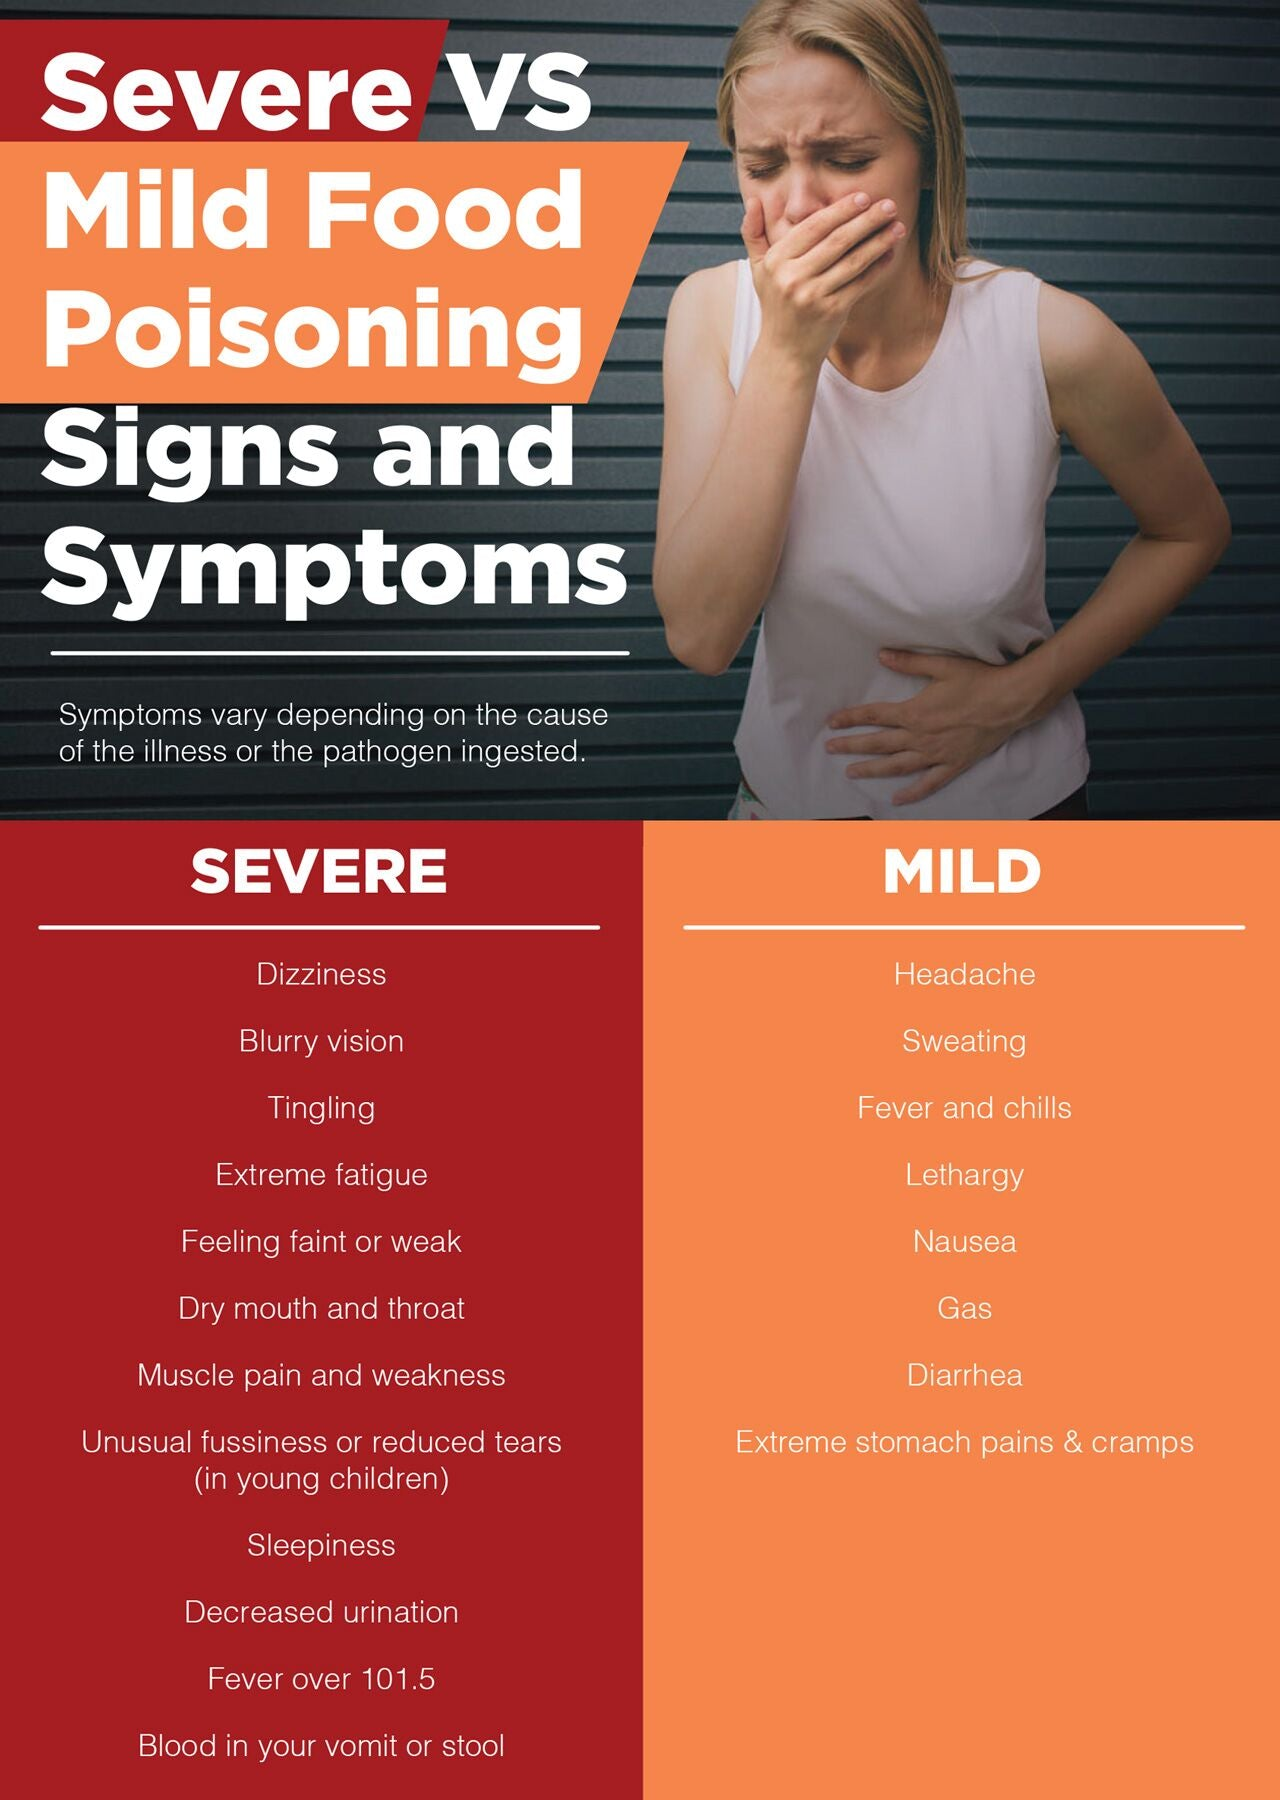 Food poisoning symptoms severe and mild